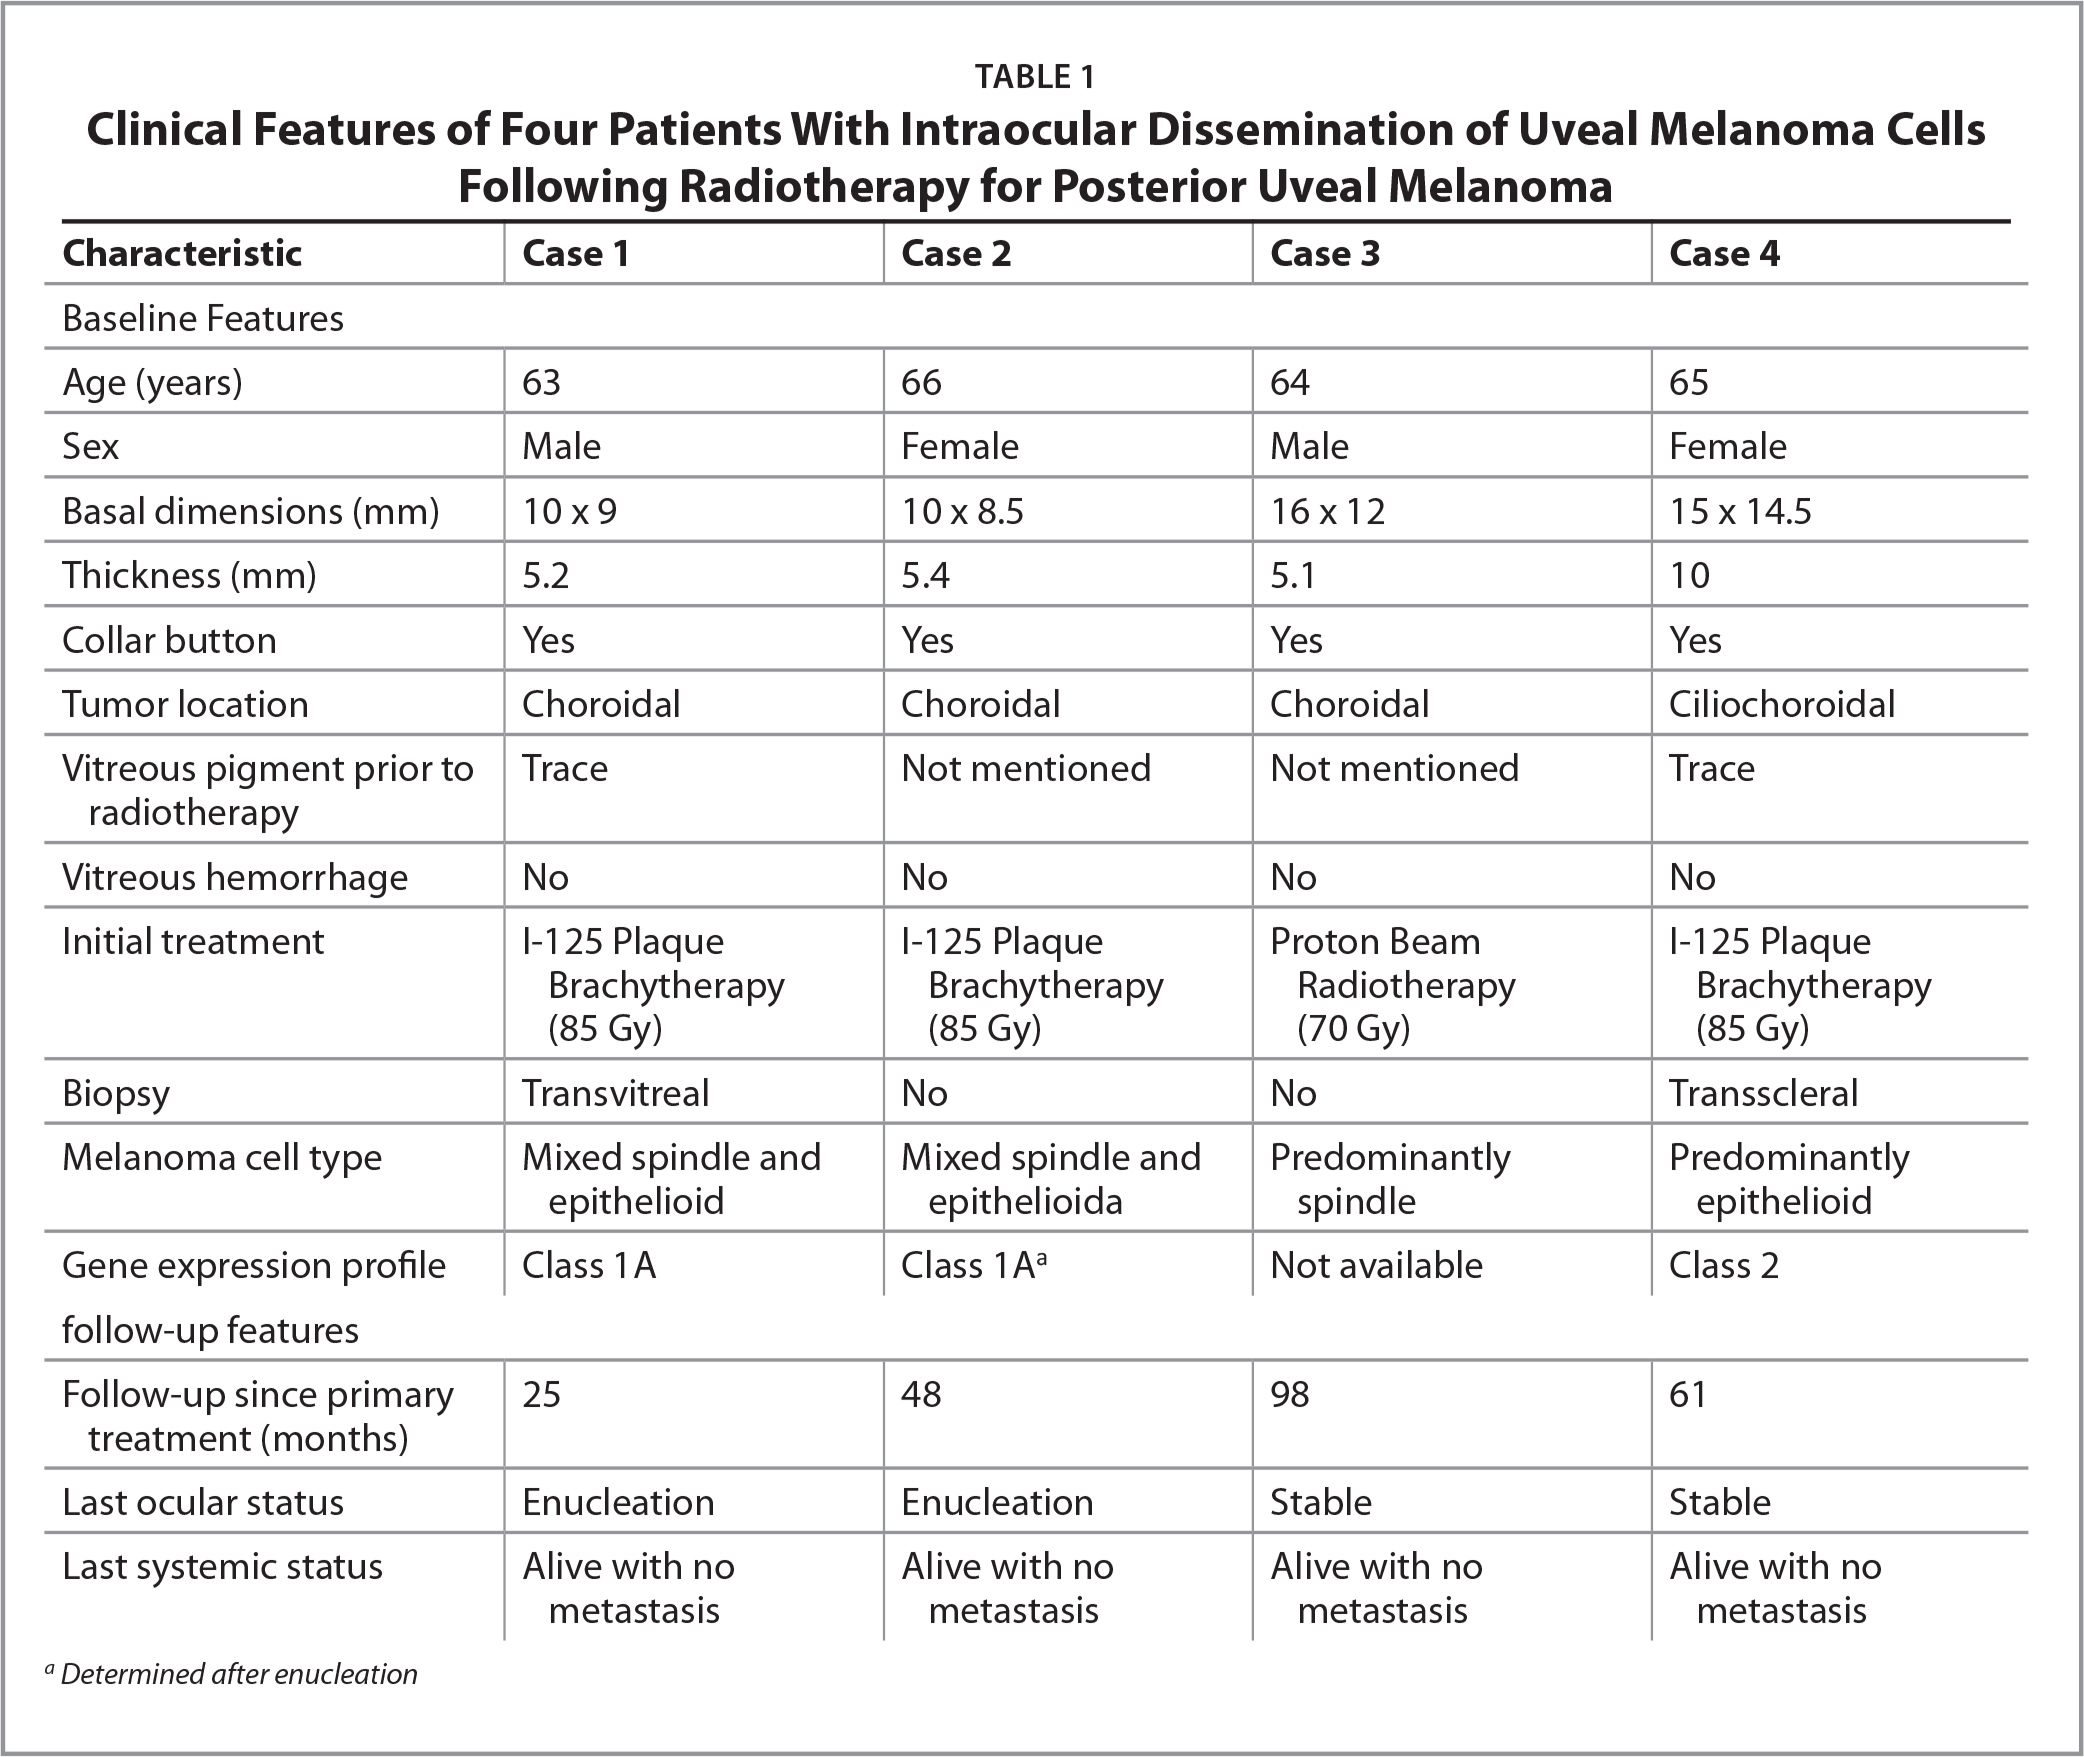 Clinical Features of Four Patients With Intraocular Dissemination of Uveal Melanoma Cells Following Radiotherapy for Posterior Uveal Melanoma